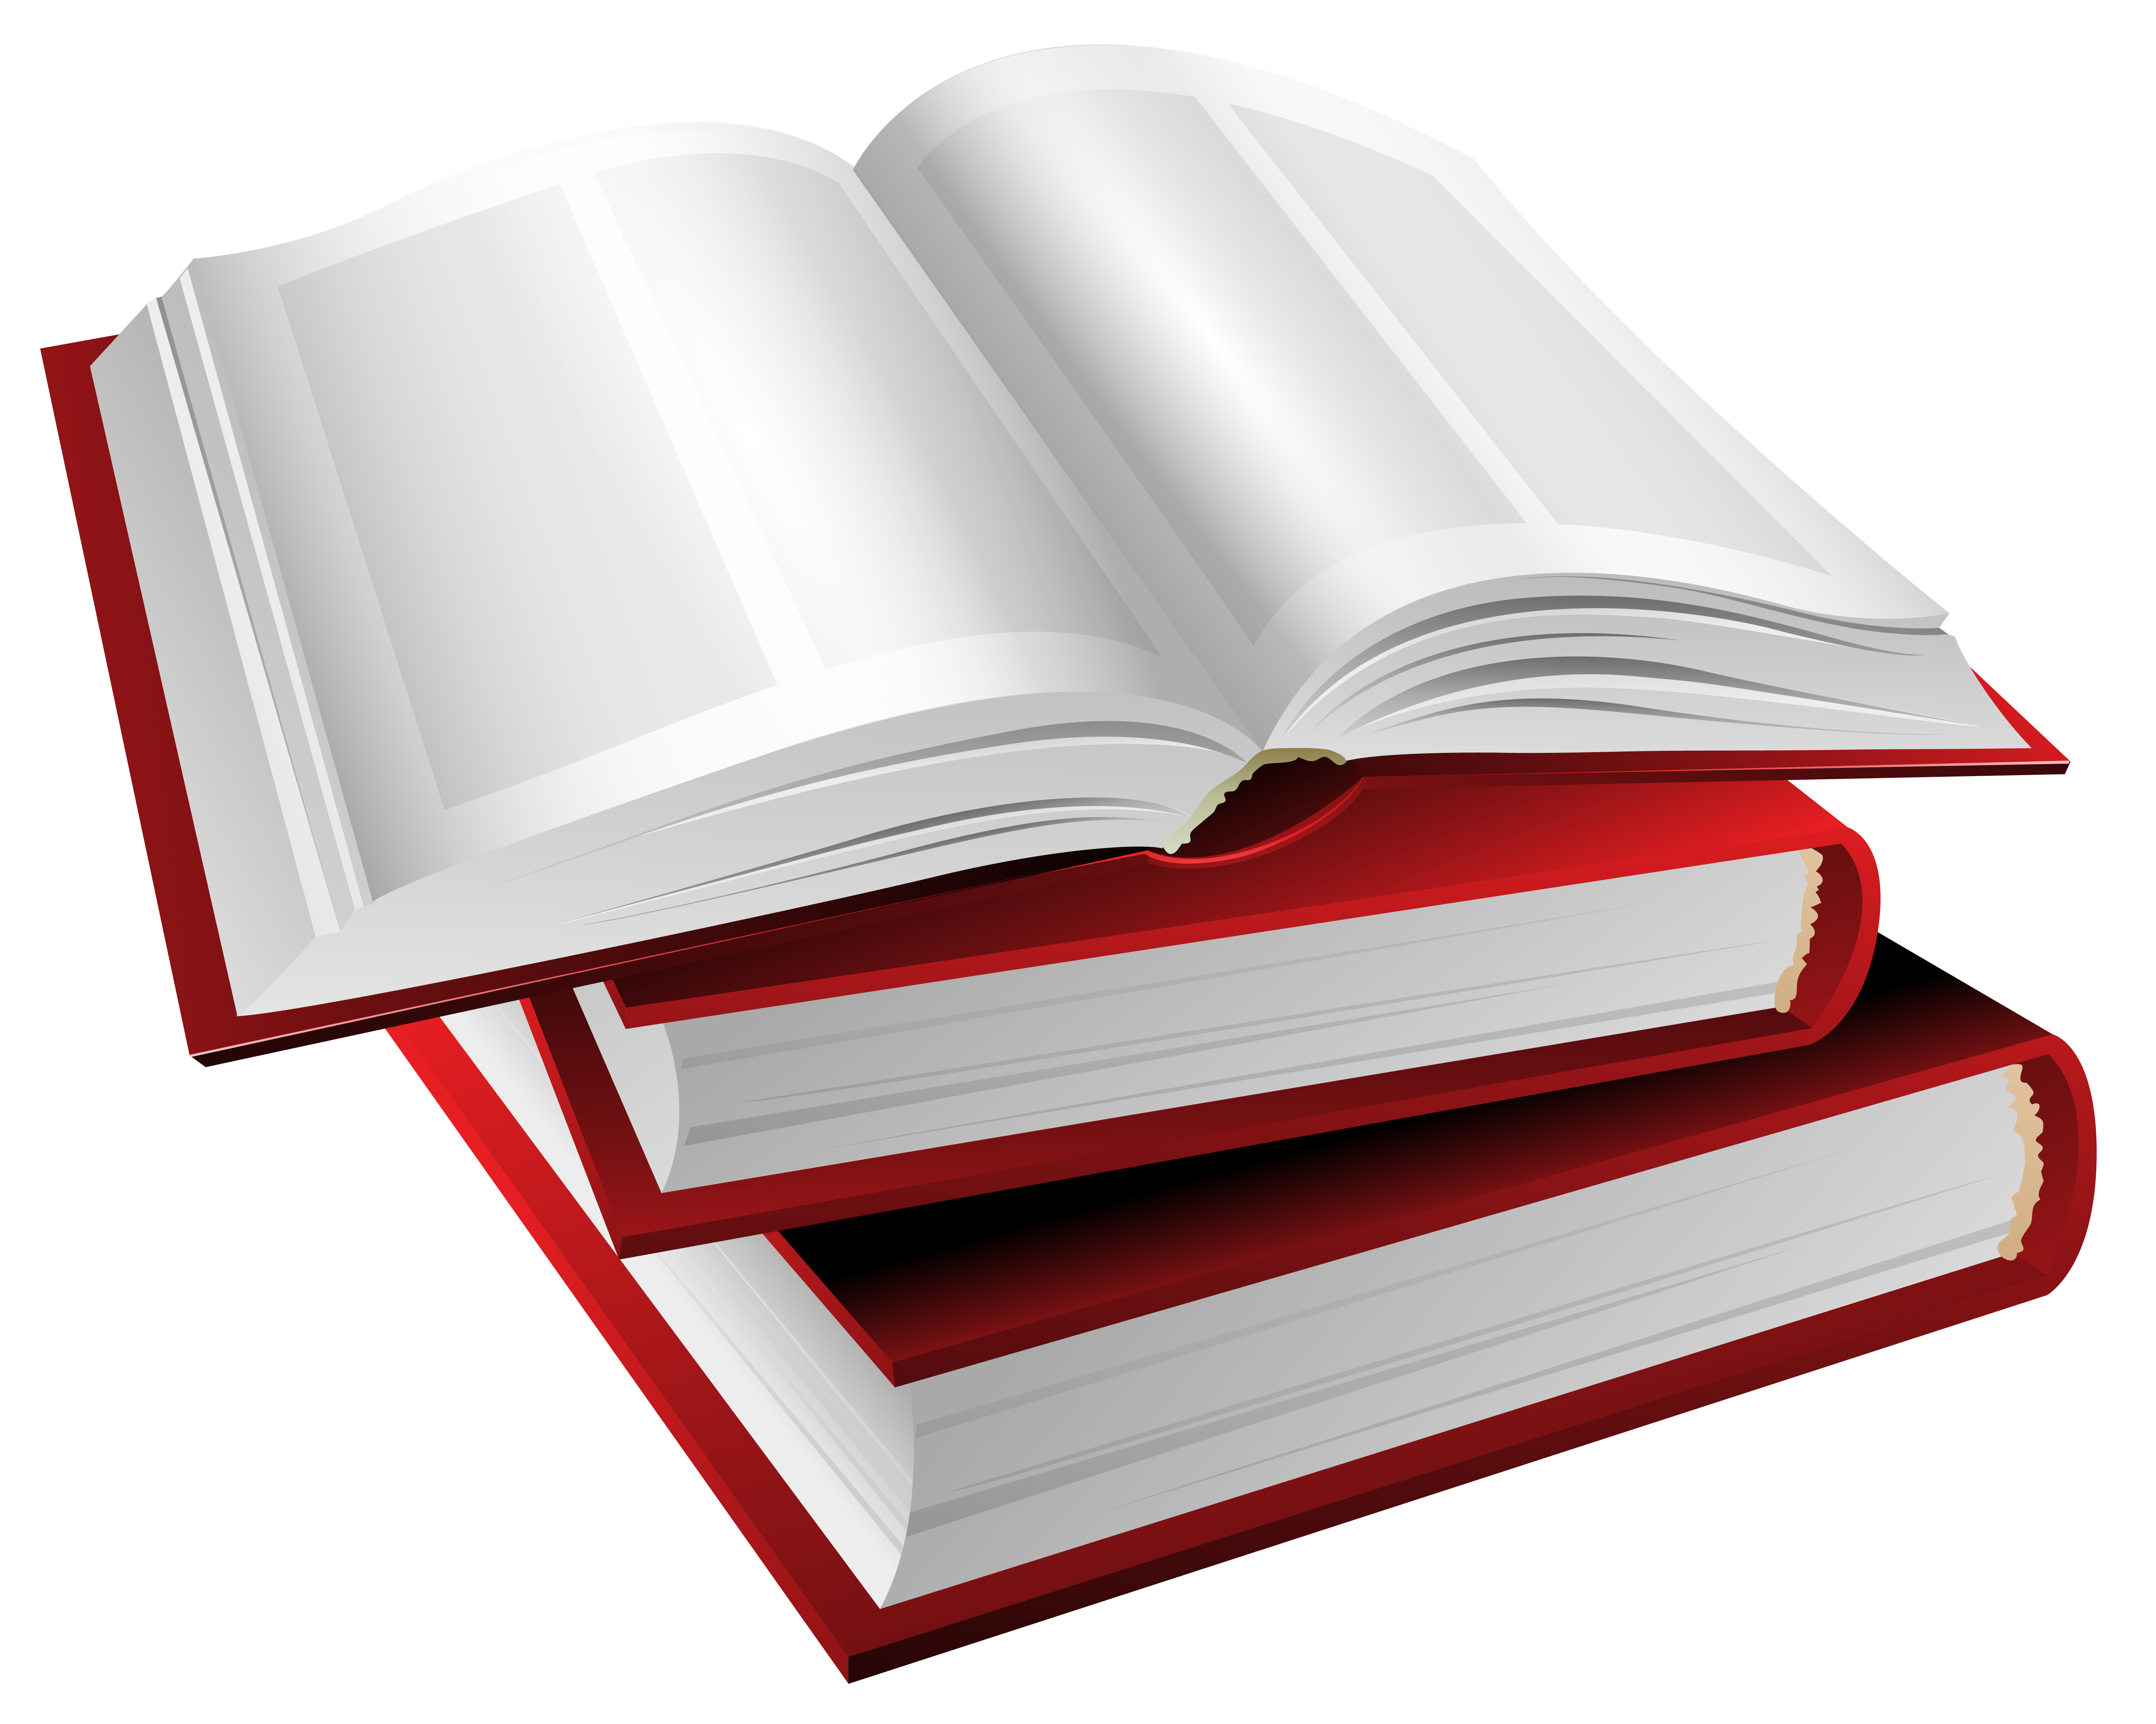 Red Books PNG Clipart Image.